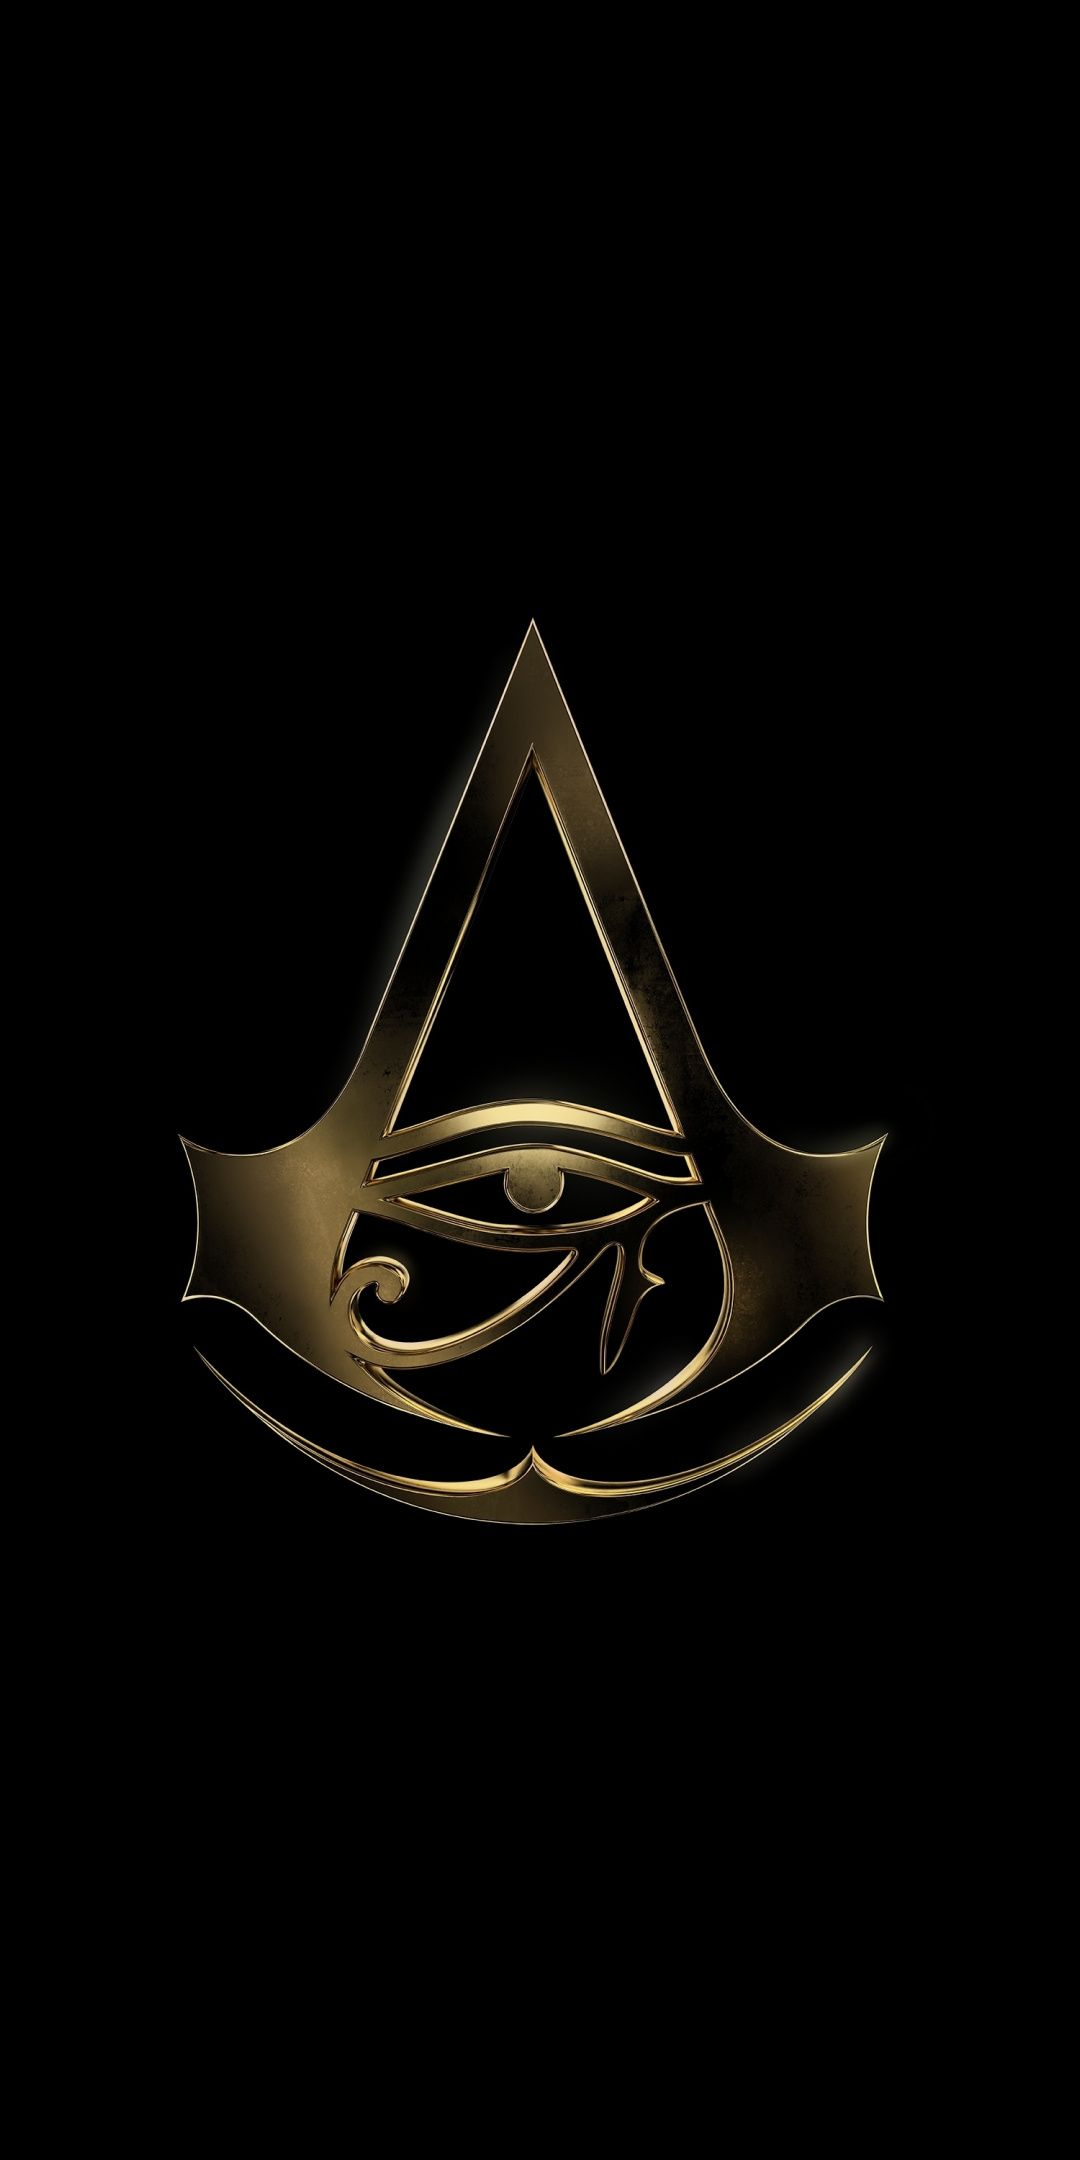 Assassin S Creed Video Game Minimal 1080x2160 Wallpaper